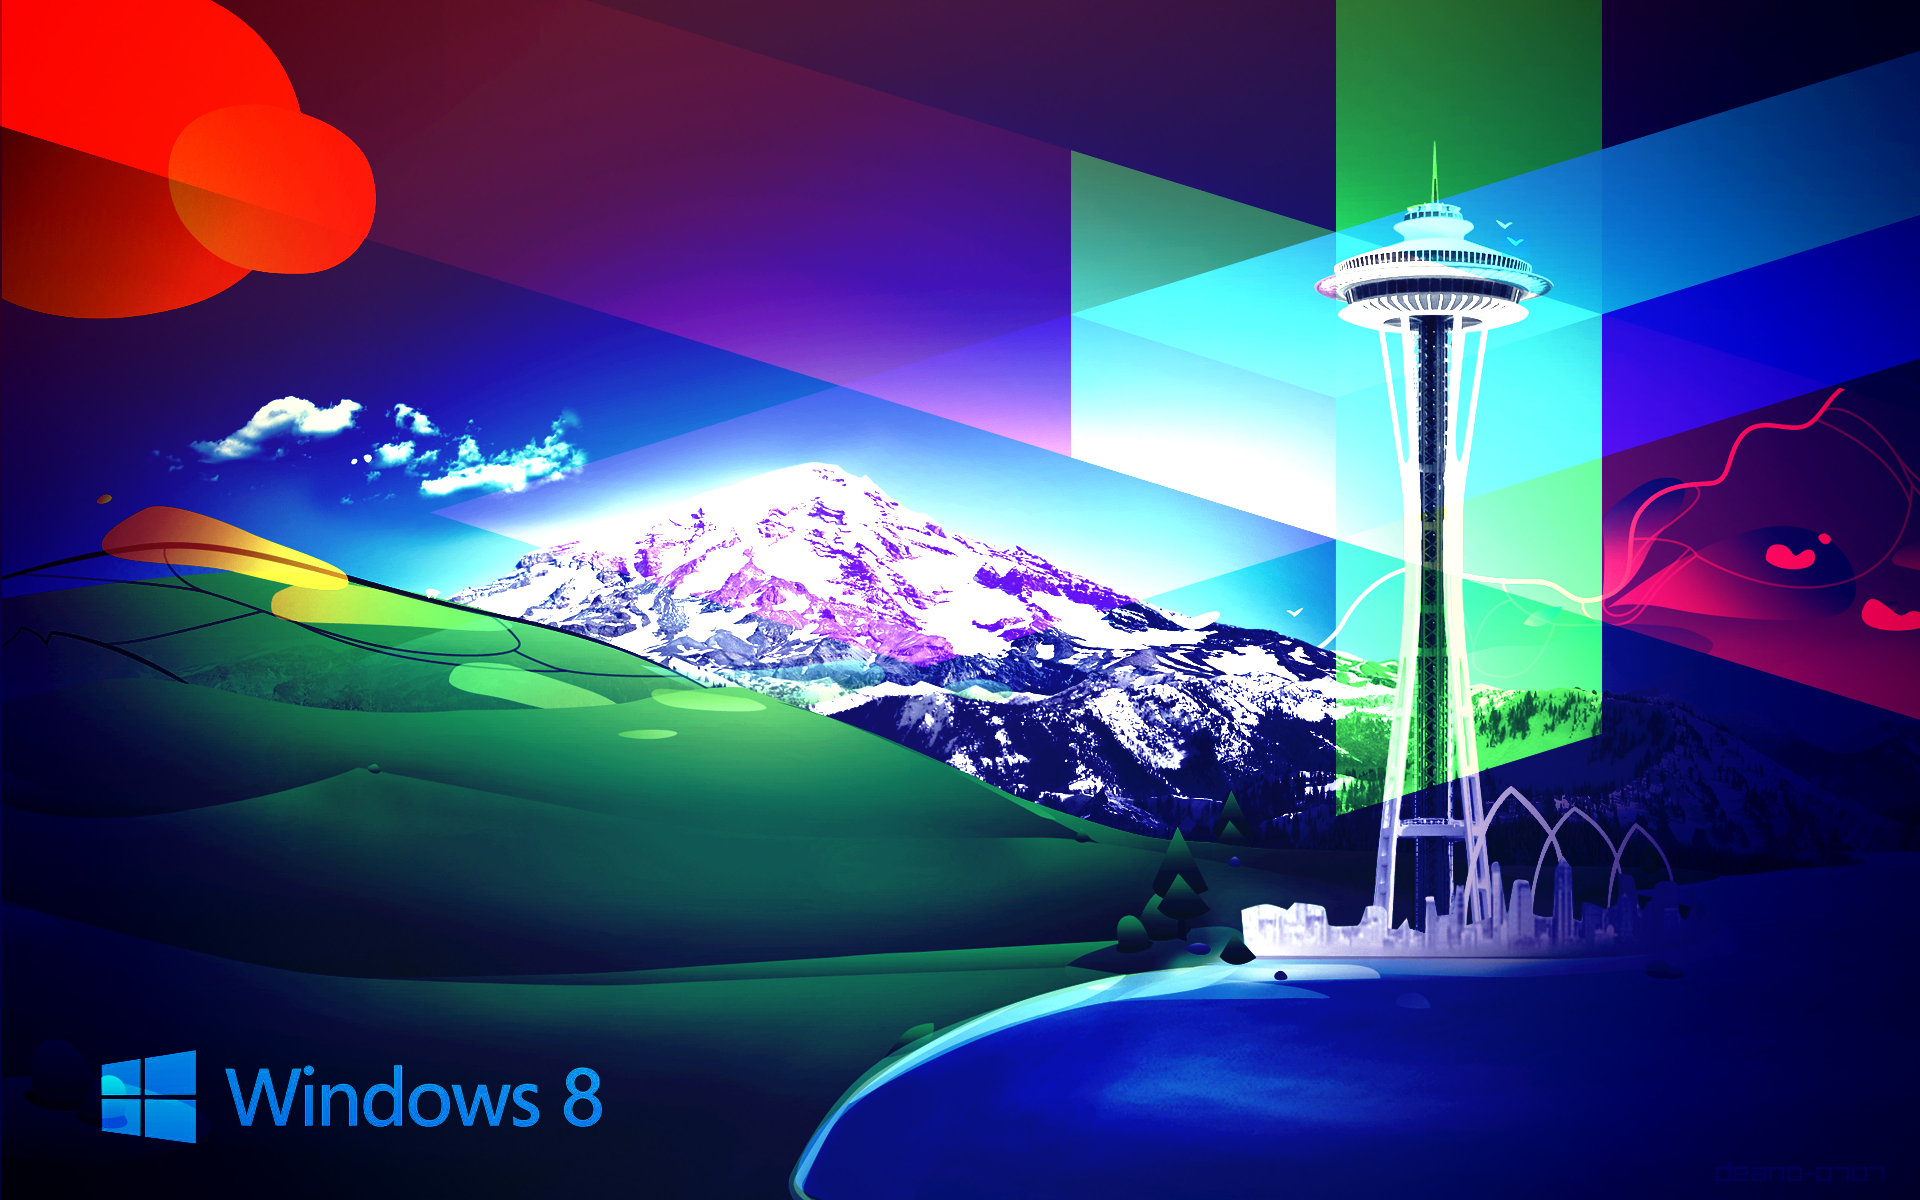 April 24, 2014: Windows 8, 1920x1200